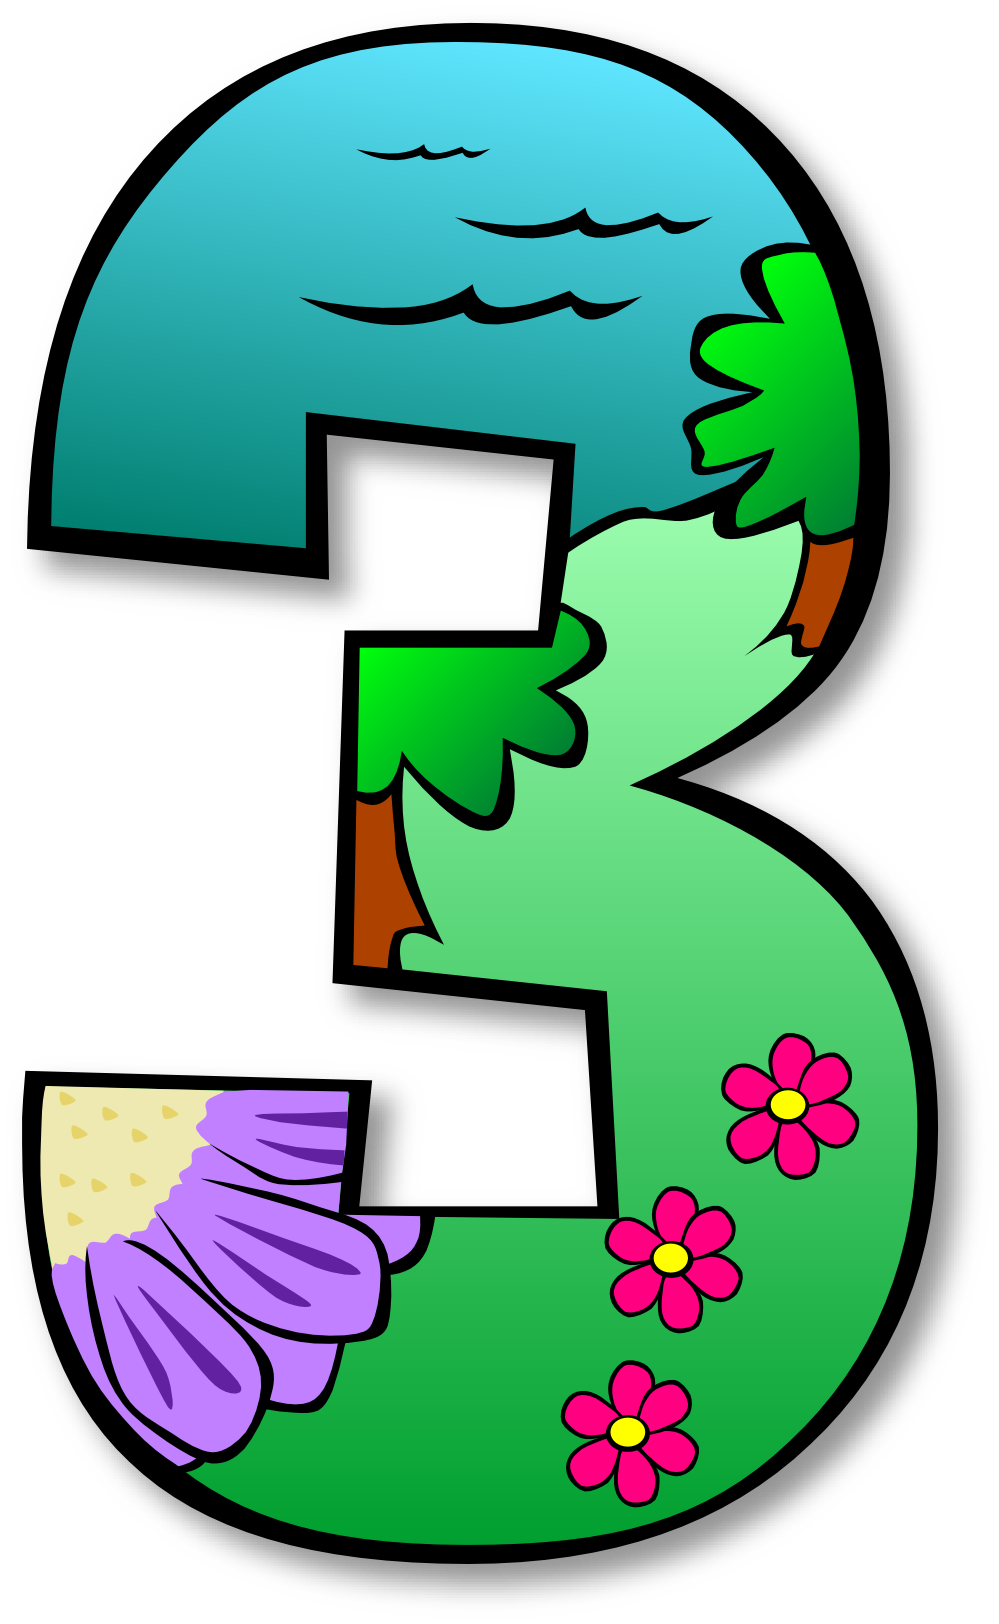 1 clipart numbers.